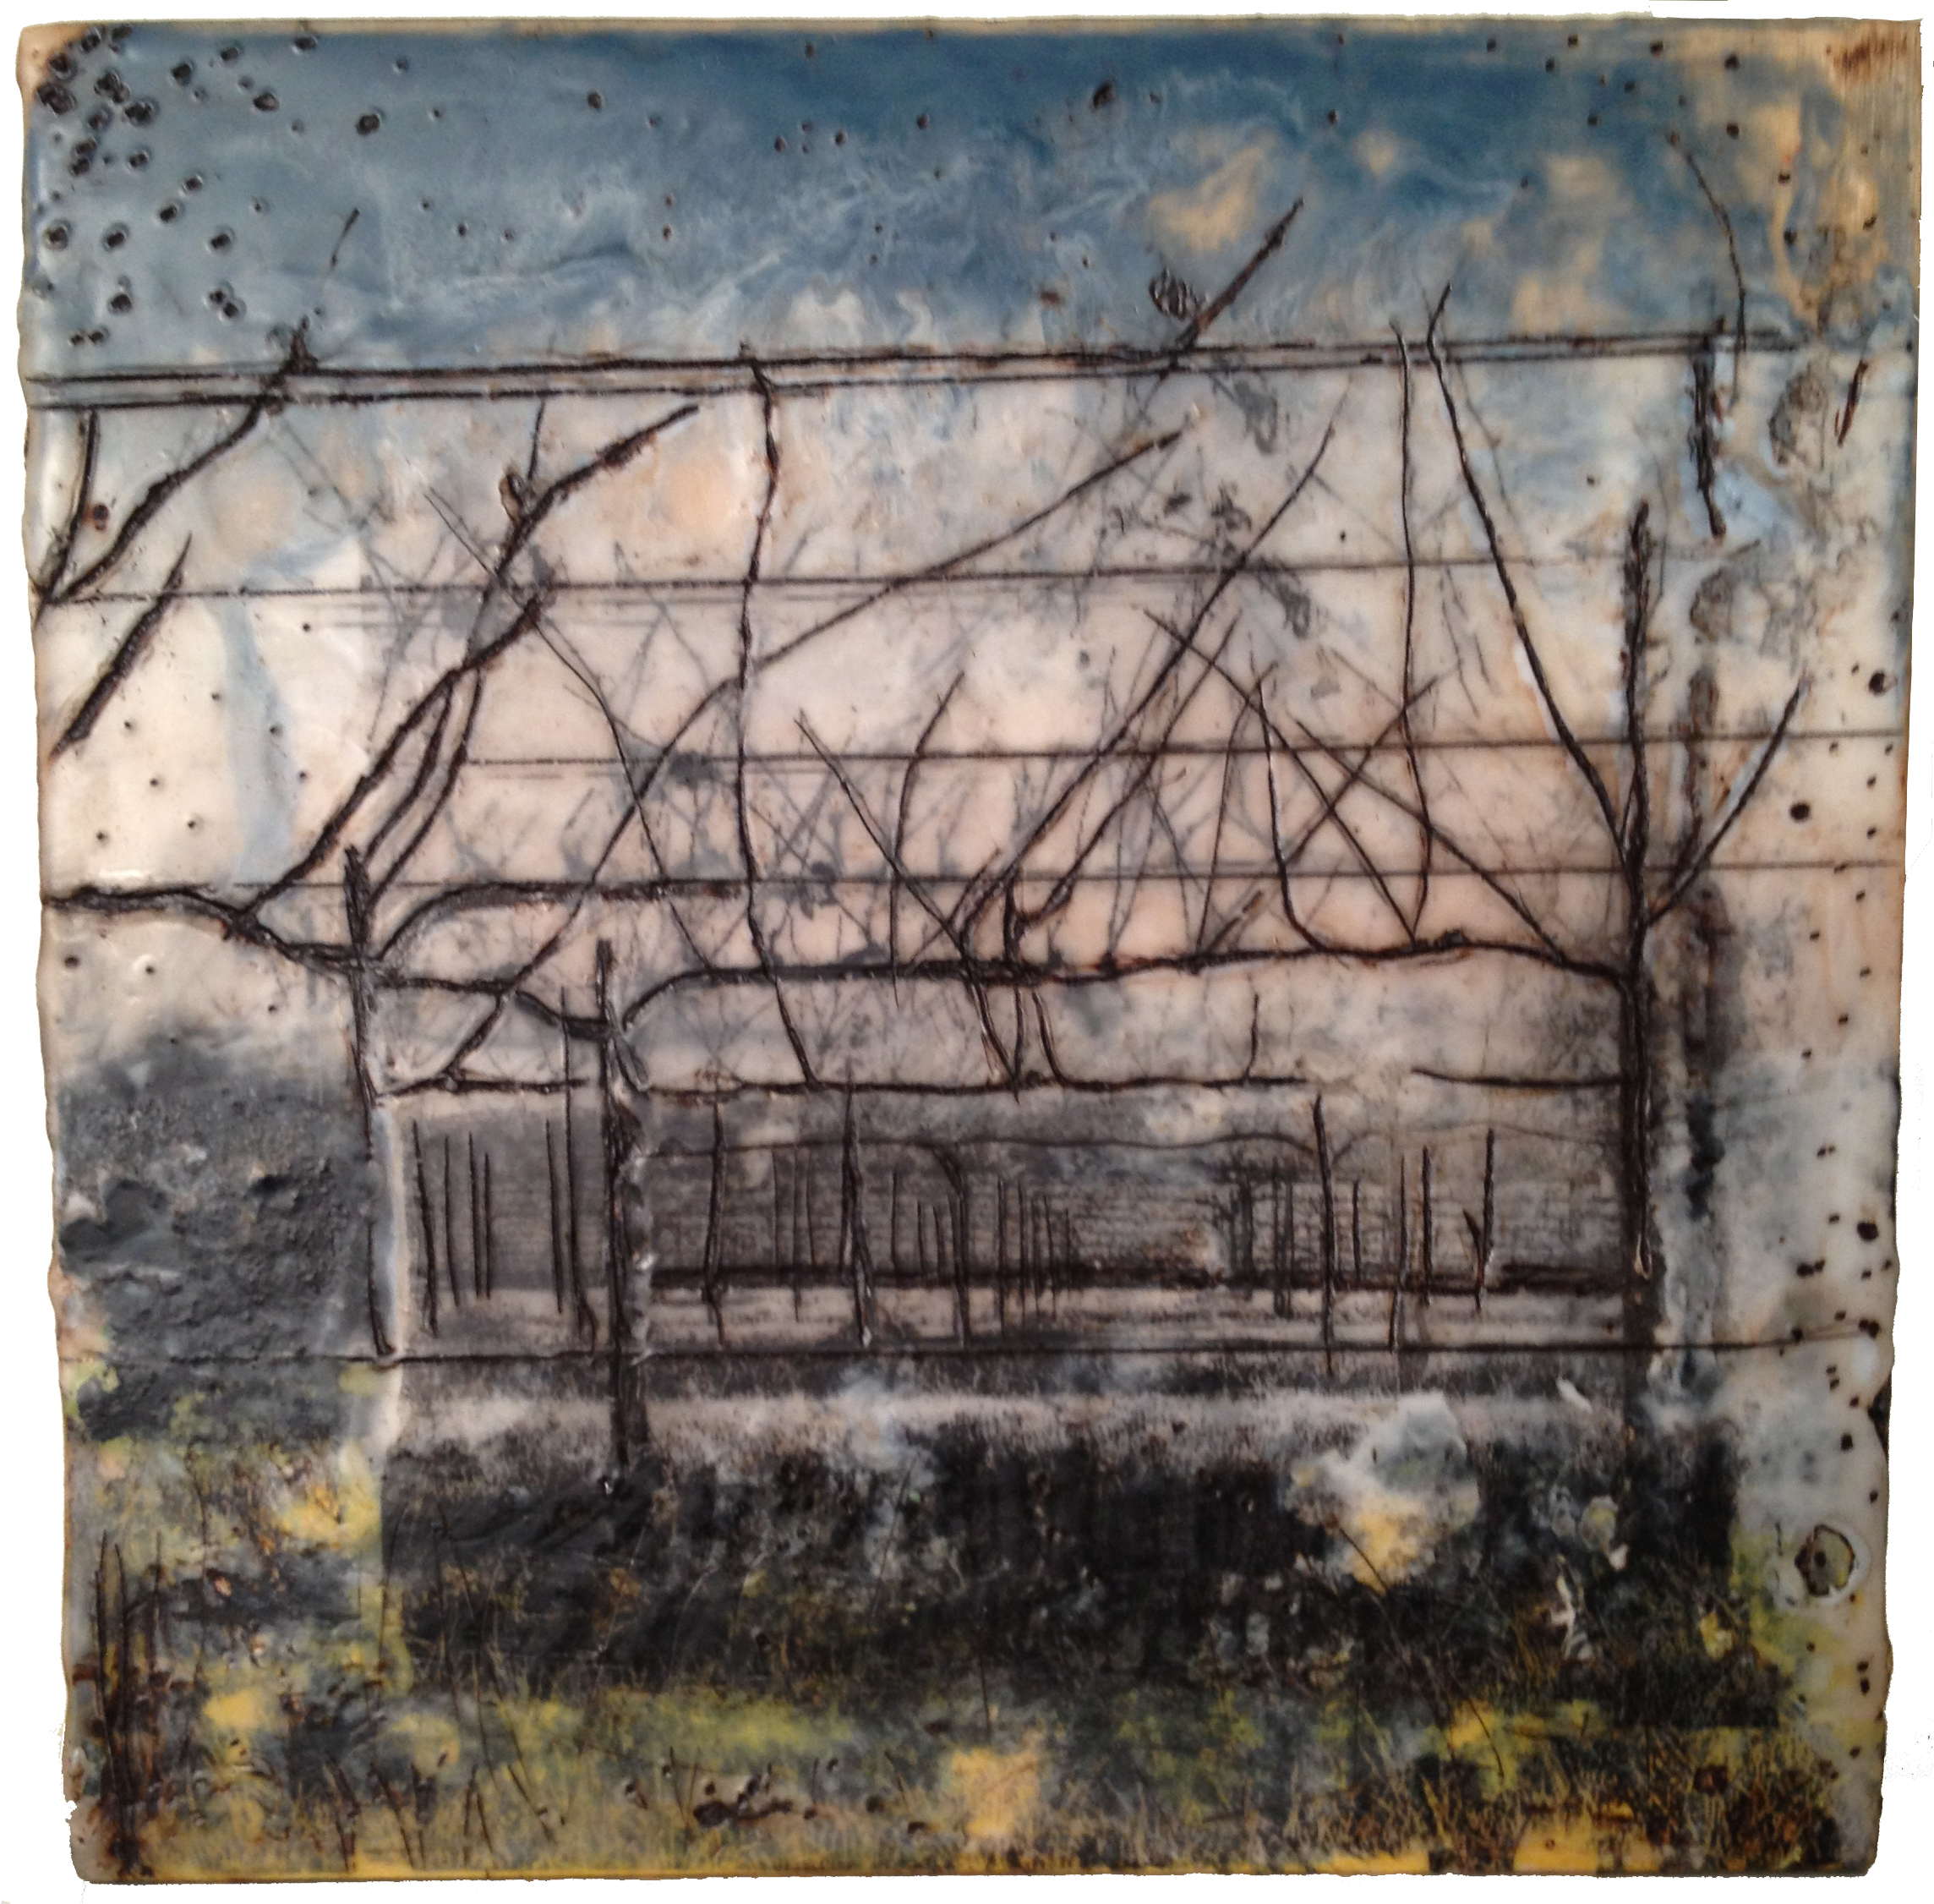 sonoma   encaustic mixed media 8 x 8 inches SOLD